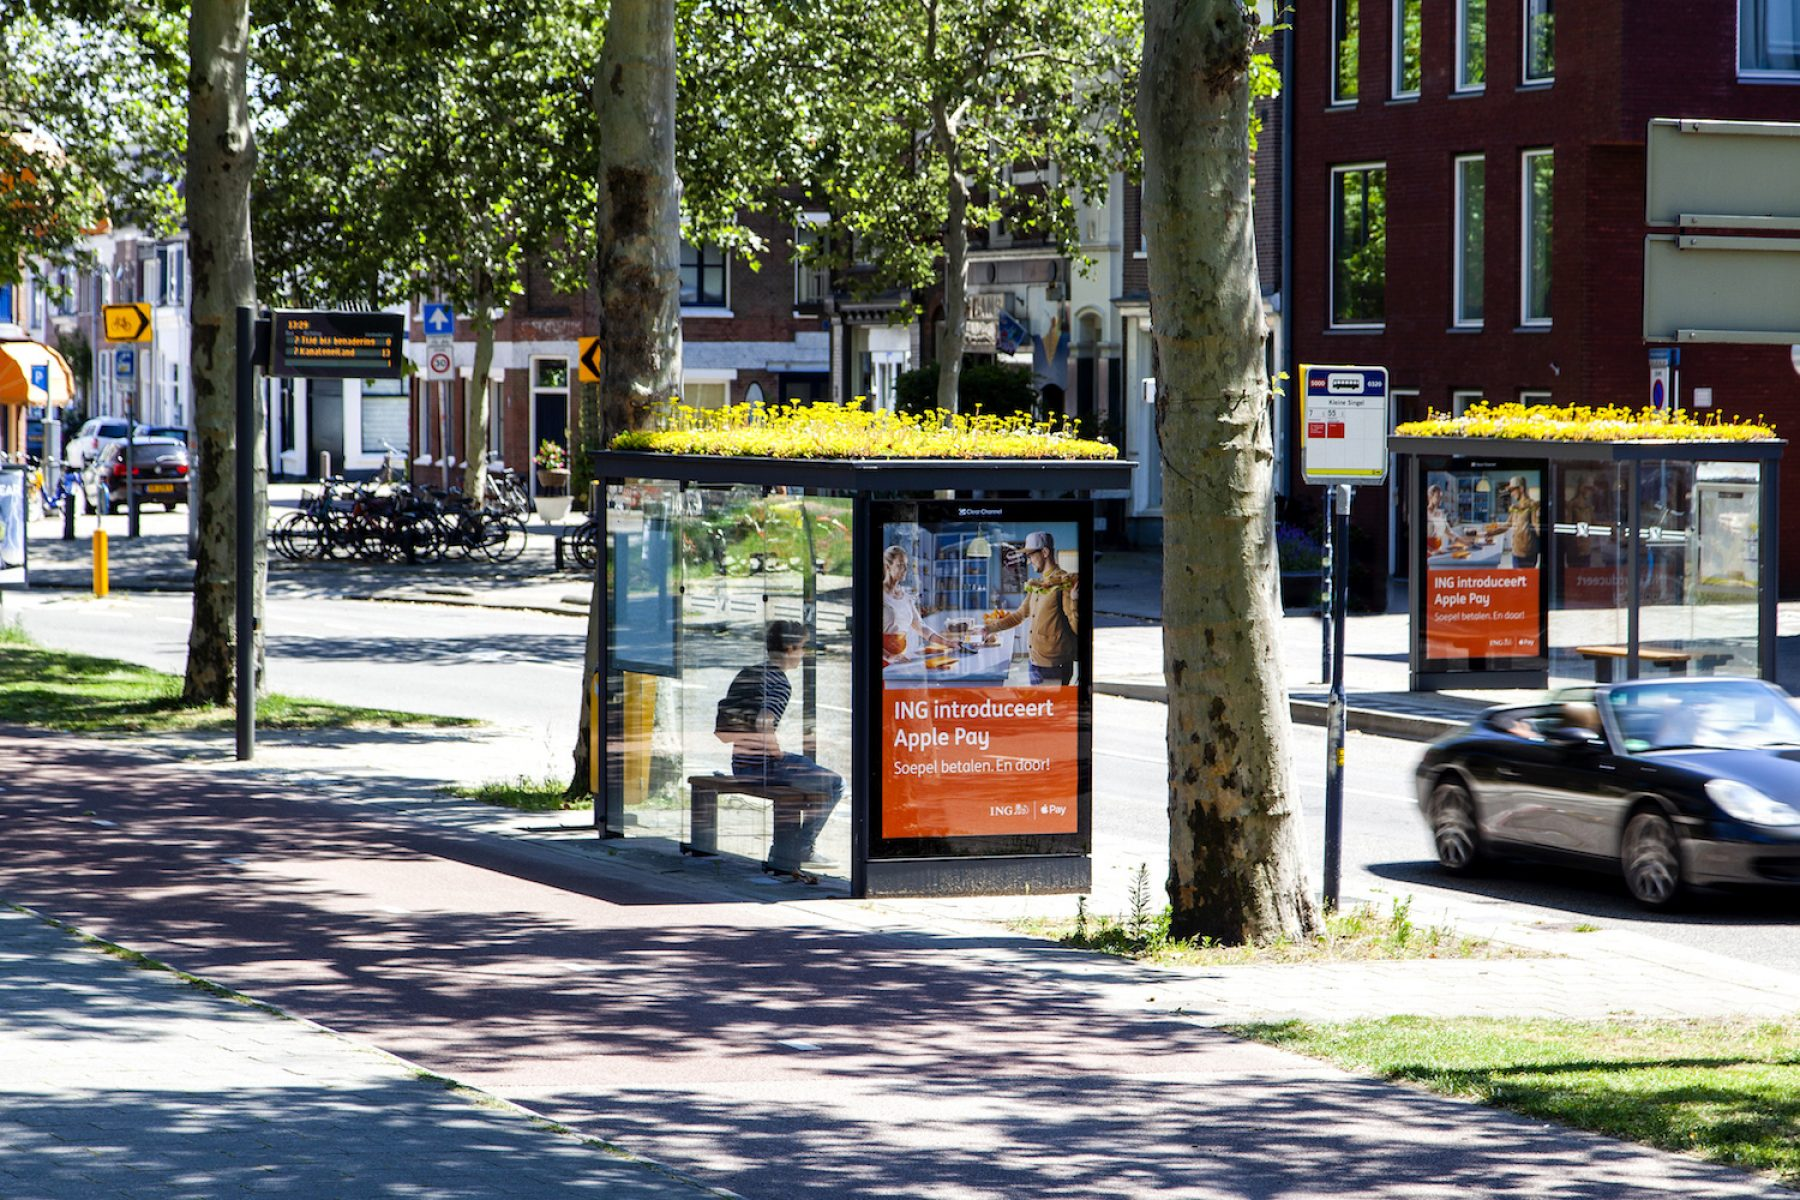 Image for Bus stops in Utrecht designed to benefit bees